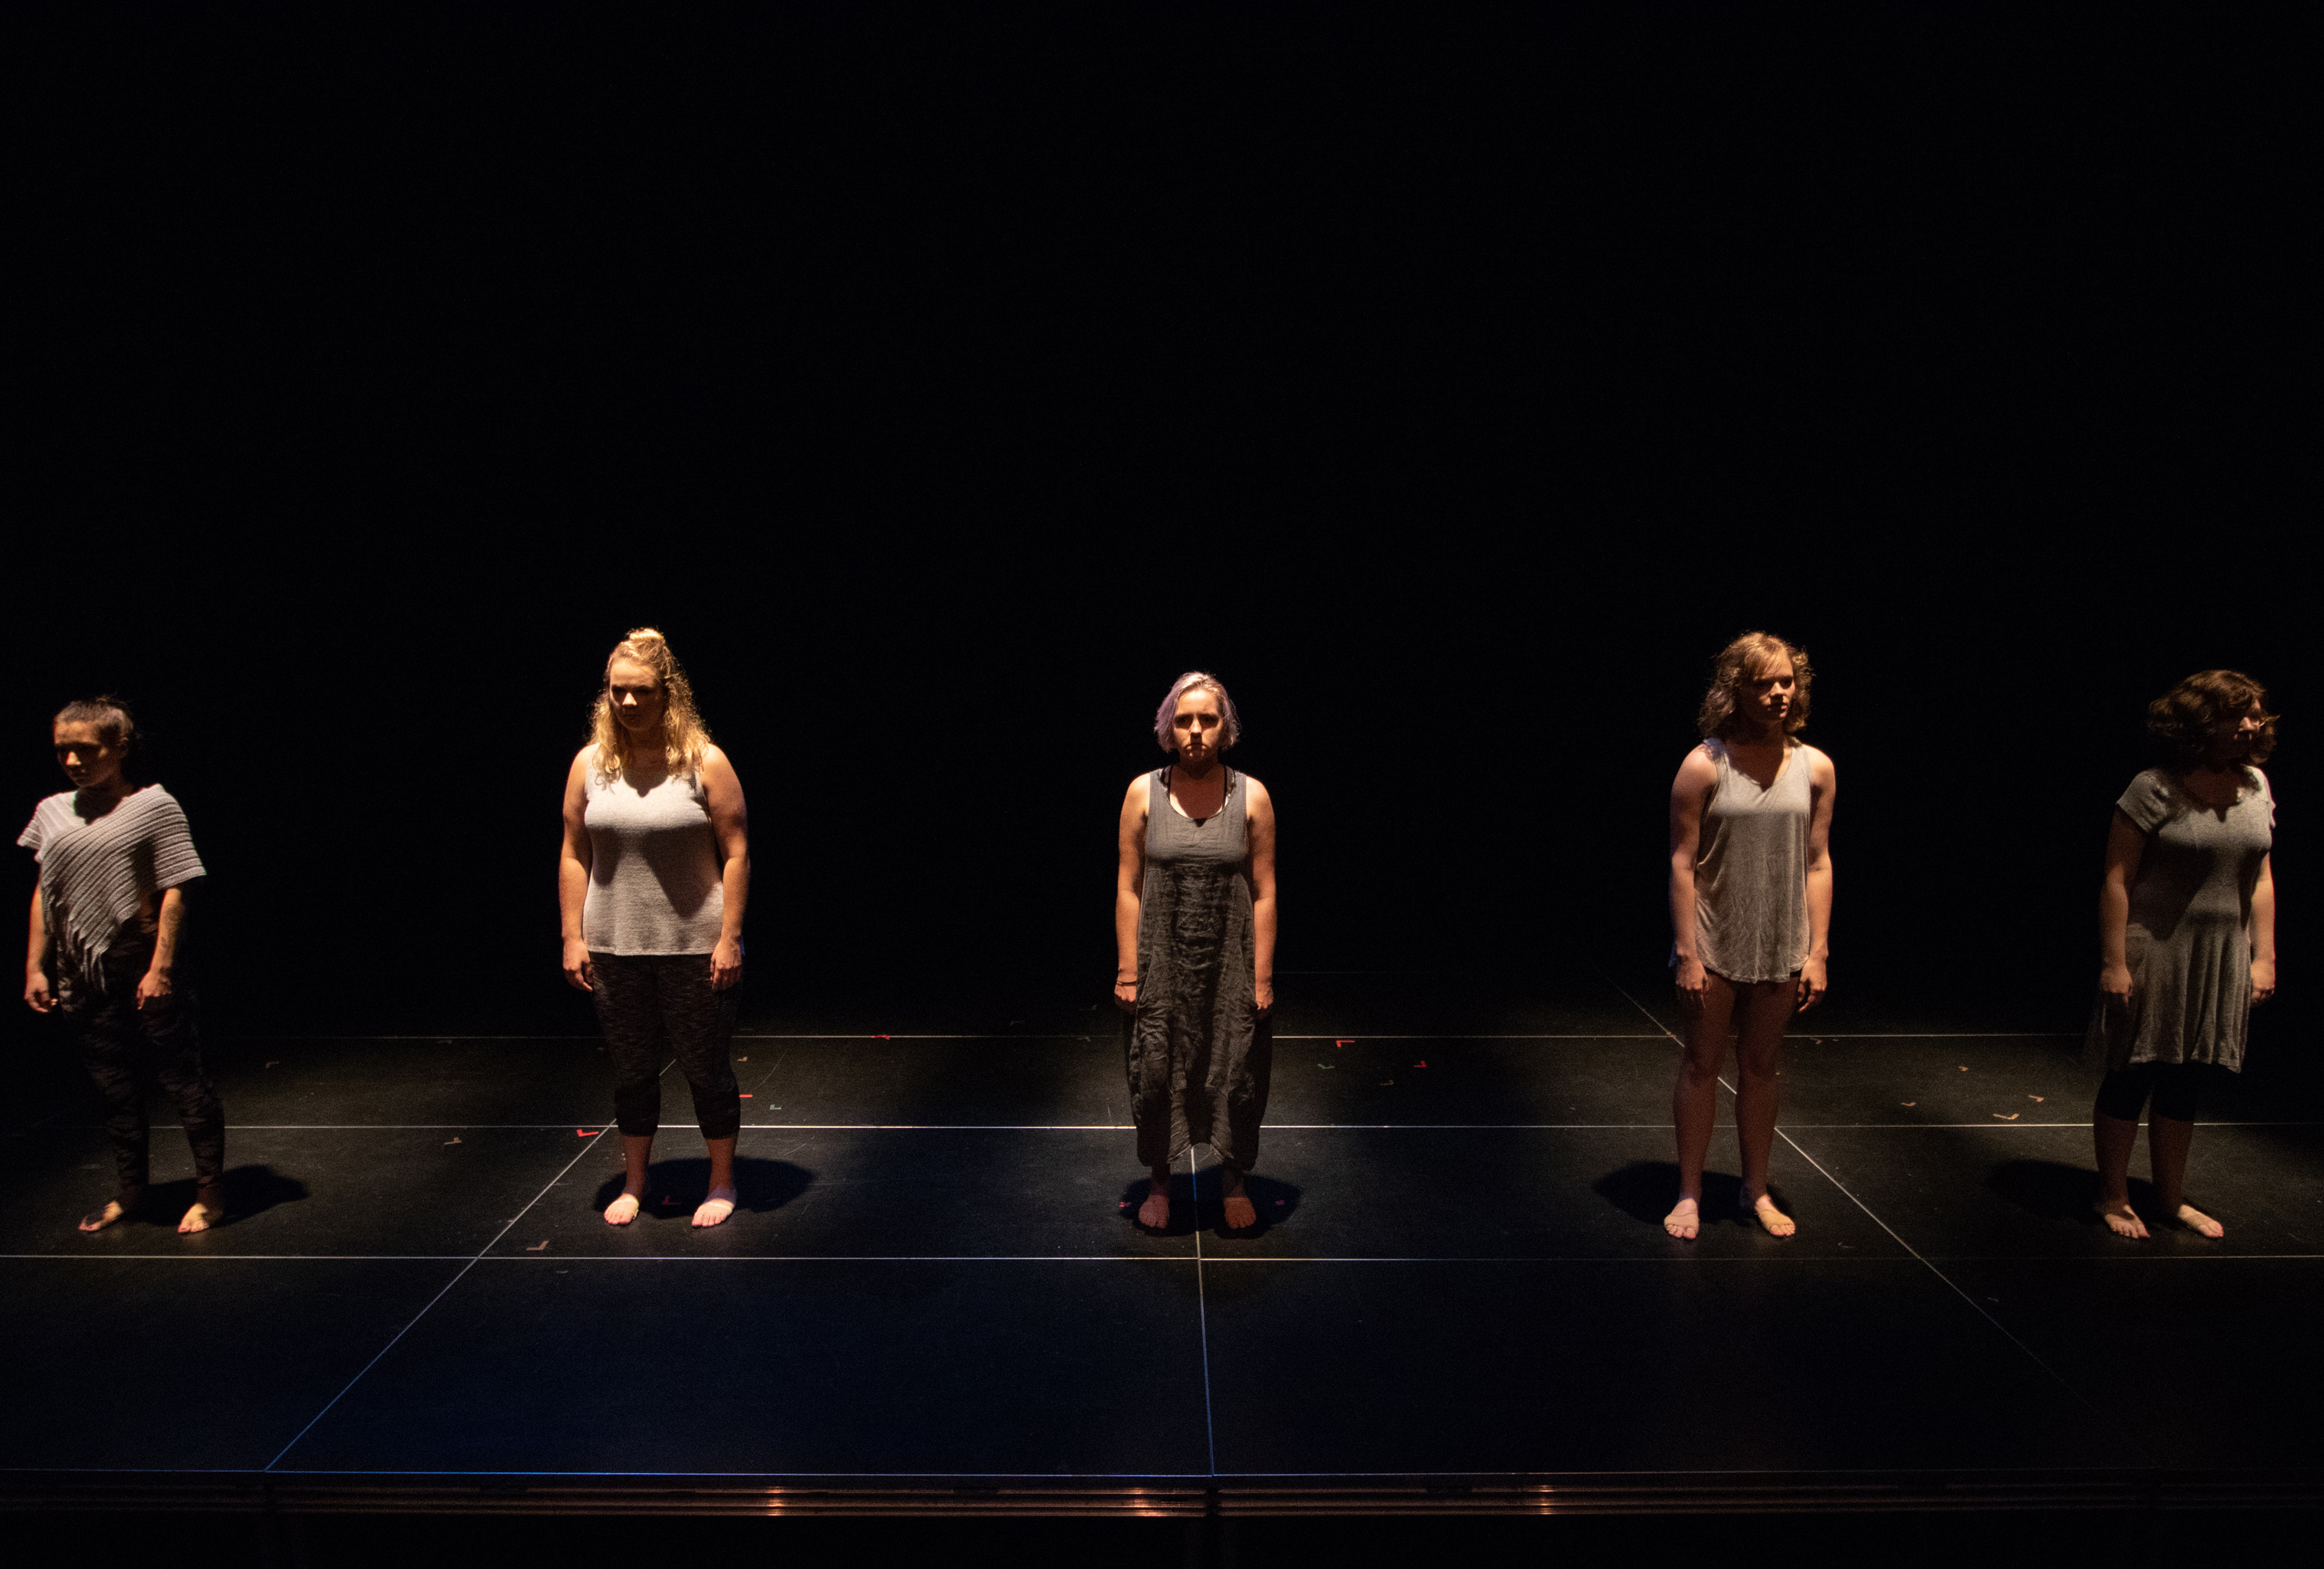 photo of five spot-lit people standing on a stage